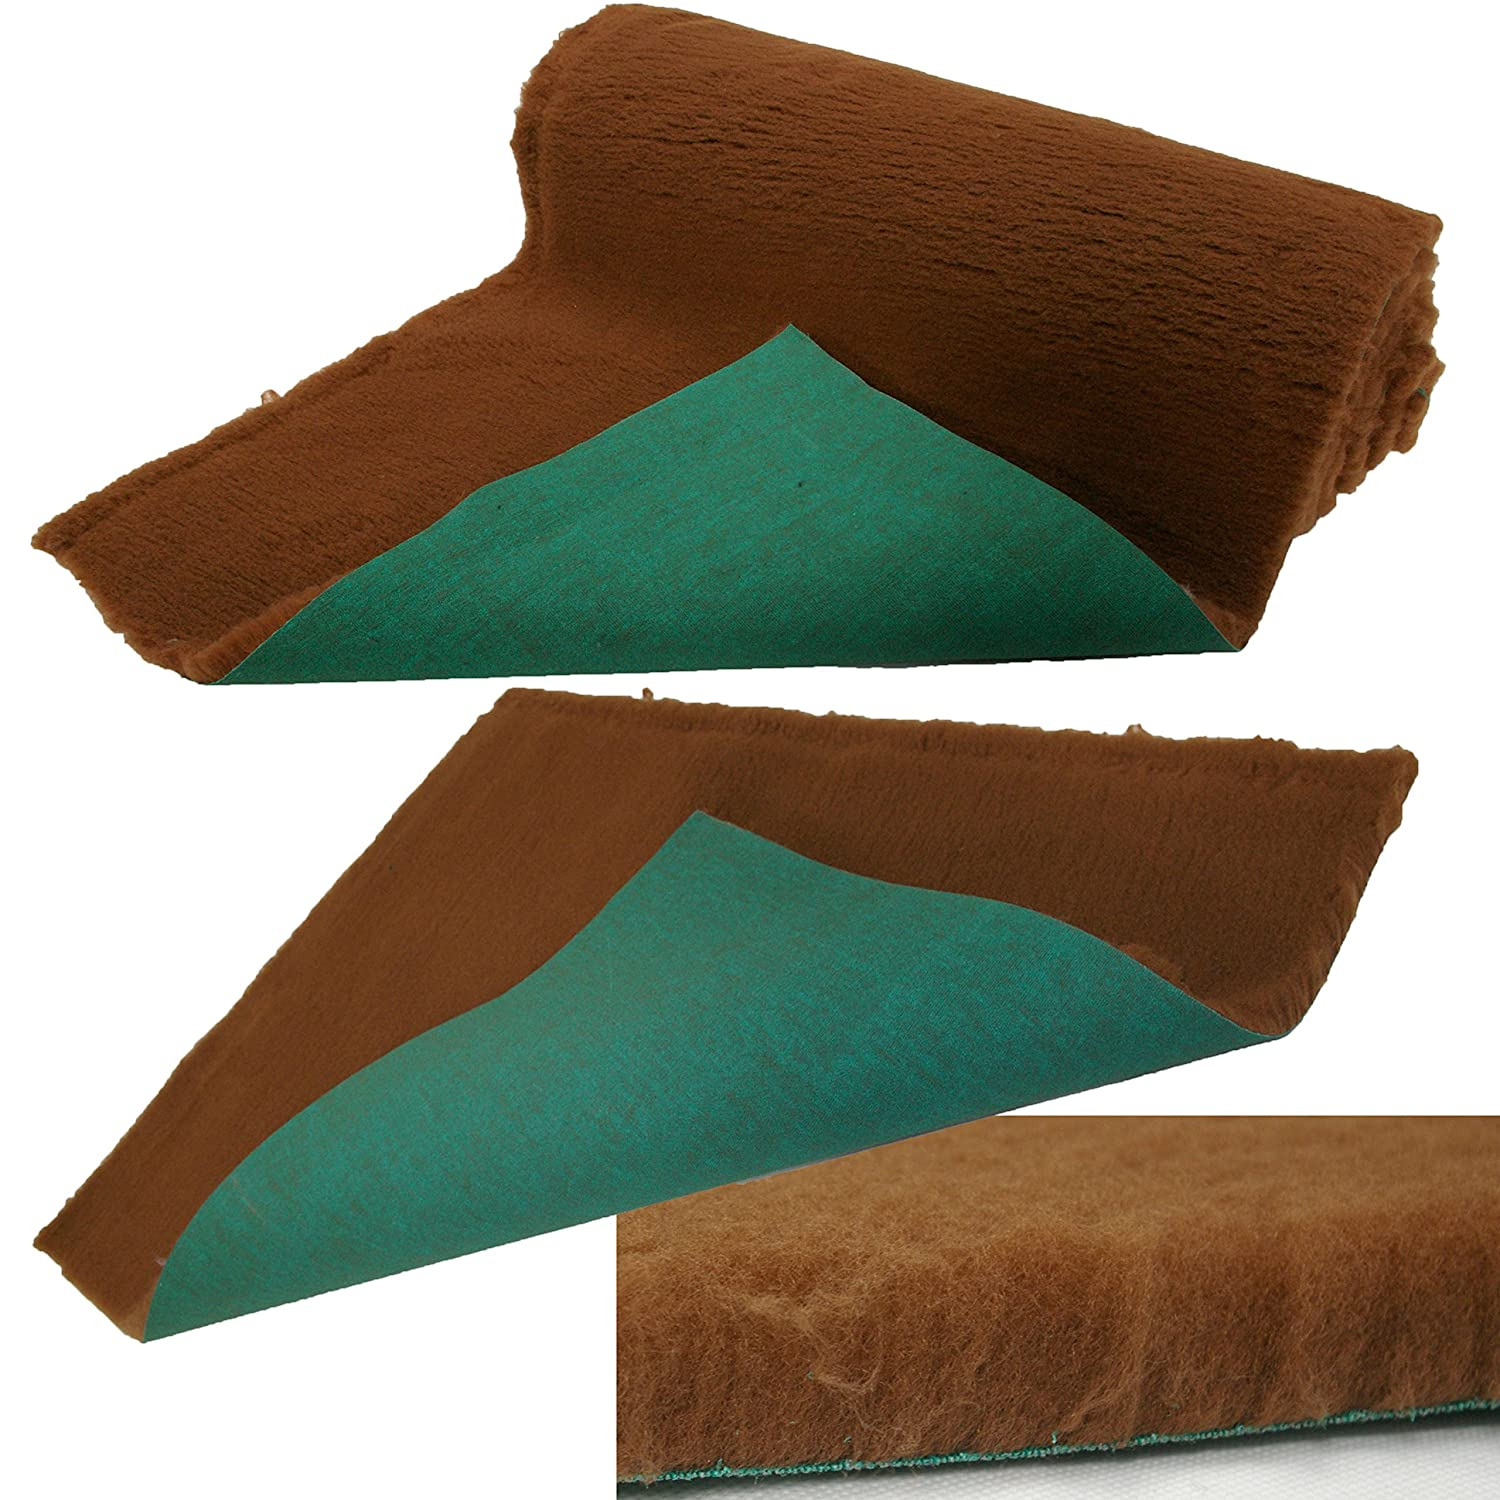 3 Metre x 75cm ROLL SoulPet Traditional Brown HighGrade Vet Bedding 30mm THICK ROLL WHELPING FLEECE DOG PUPPY PRO BED